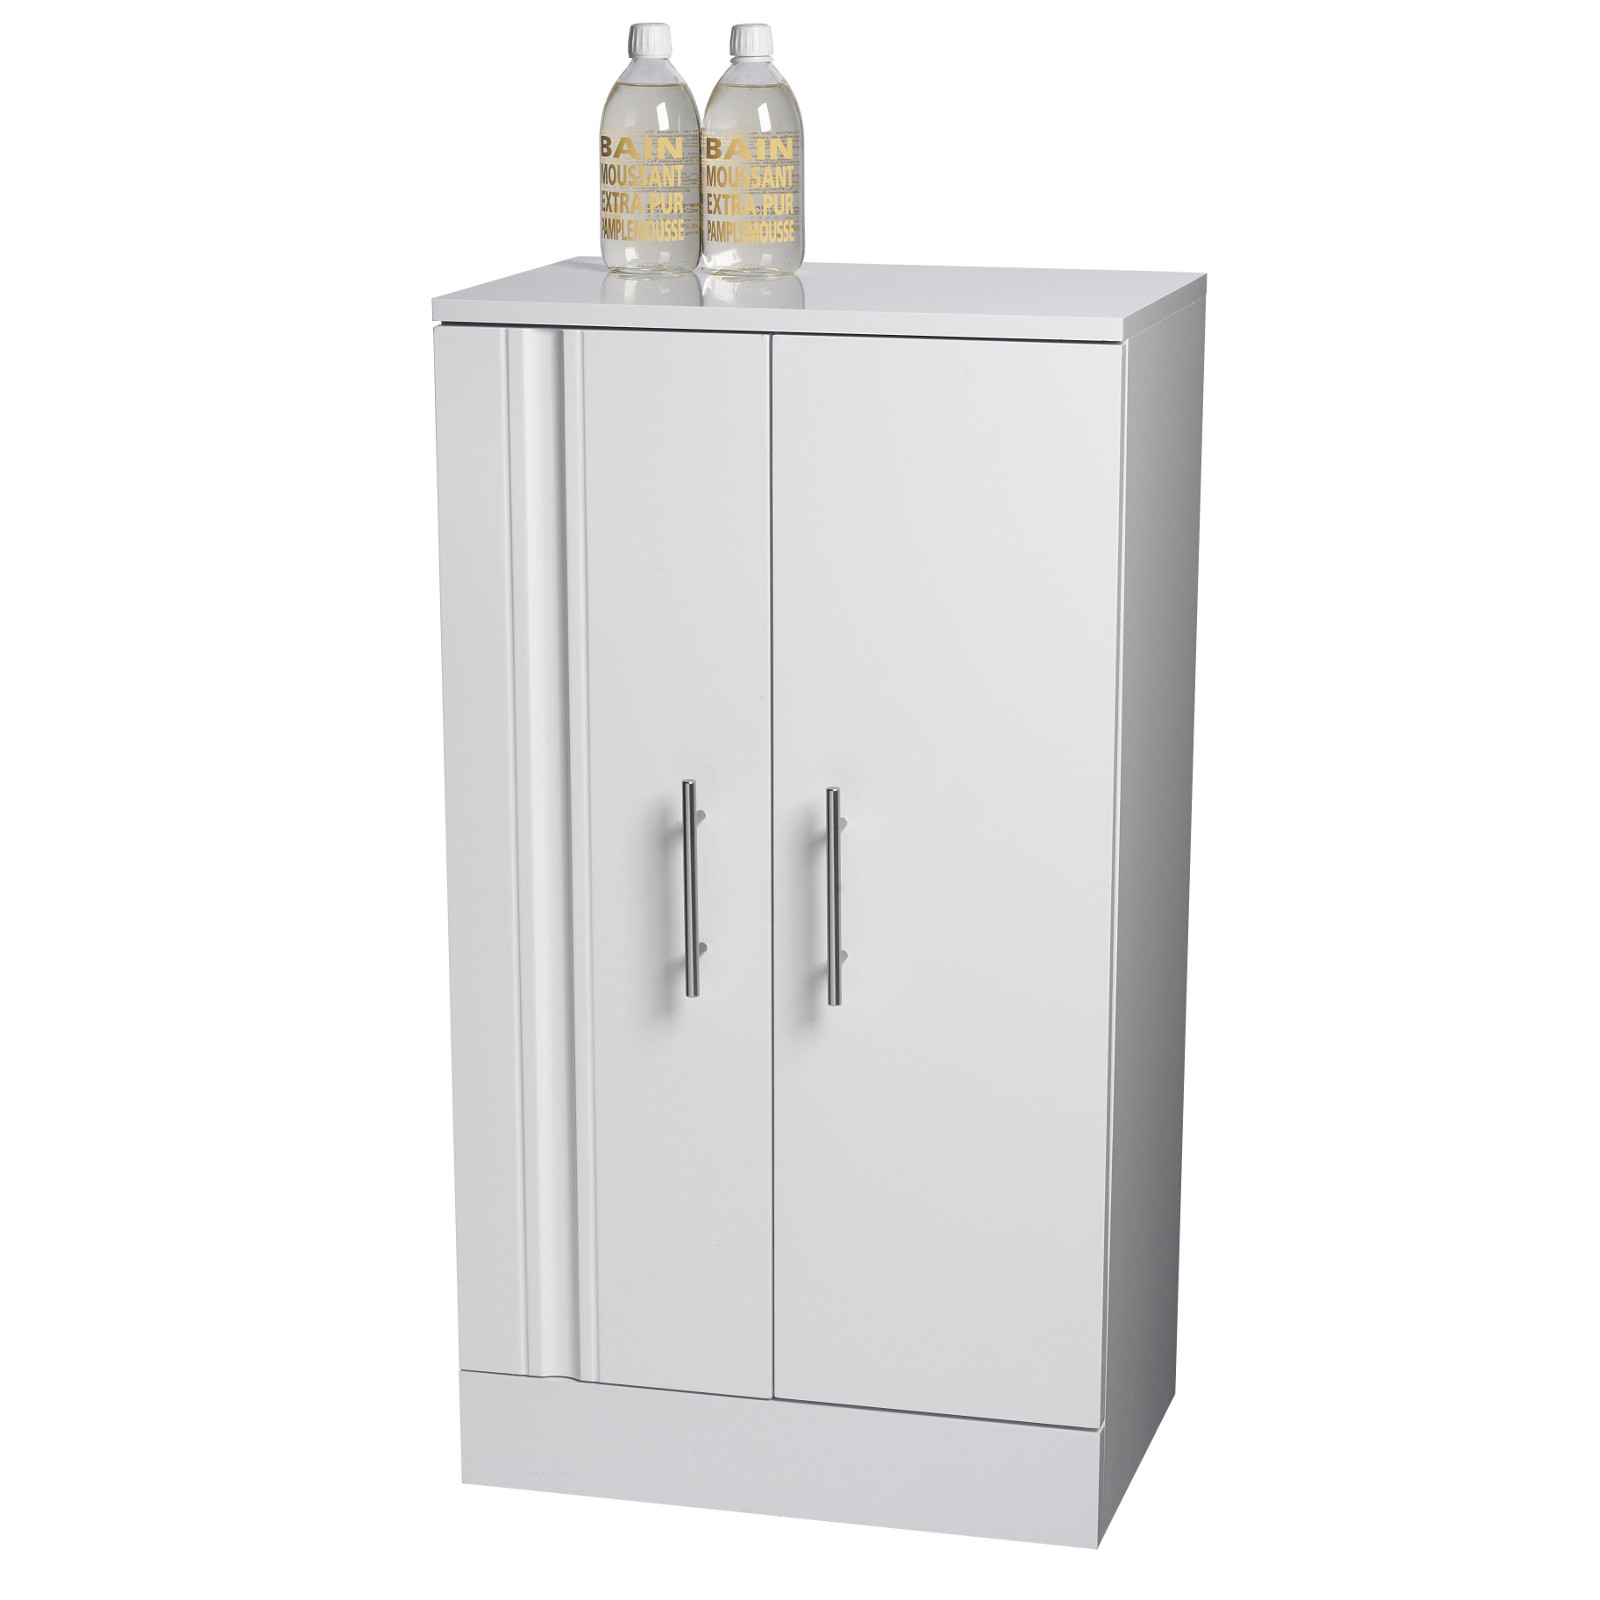 Buy Floor Standing White Como Bathroom Cabinet W Soft Close Double Doors Back2bath